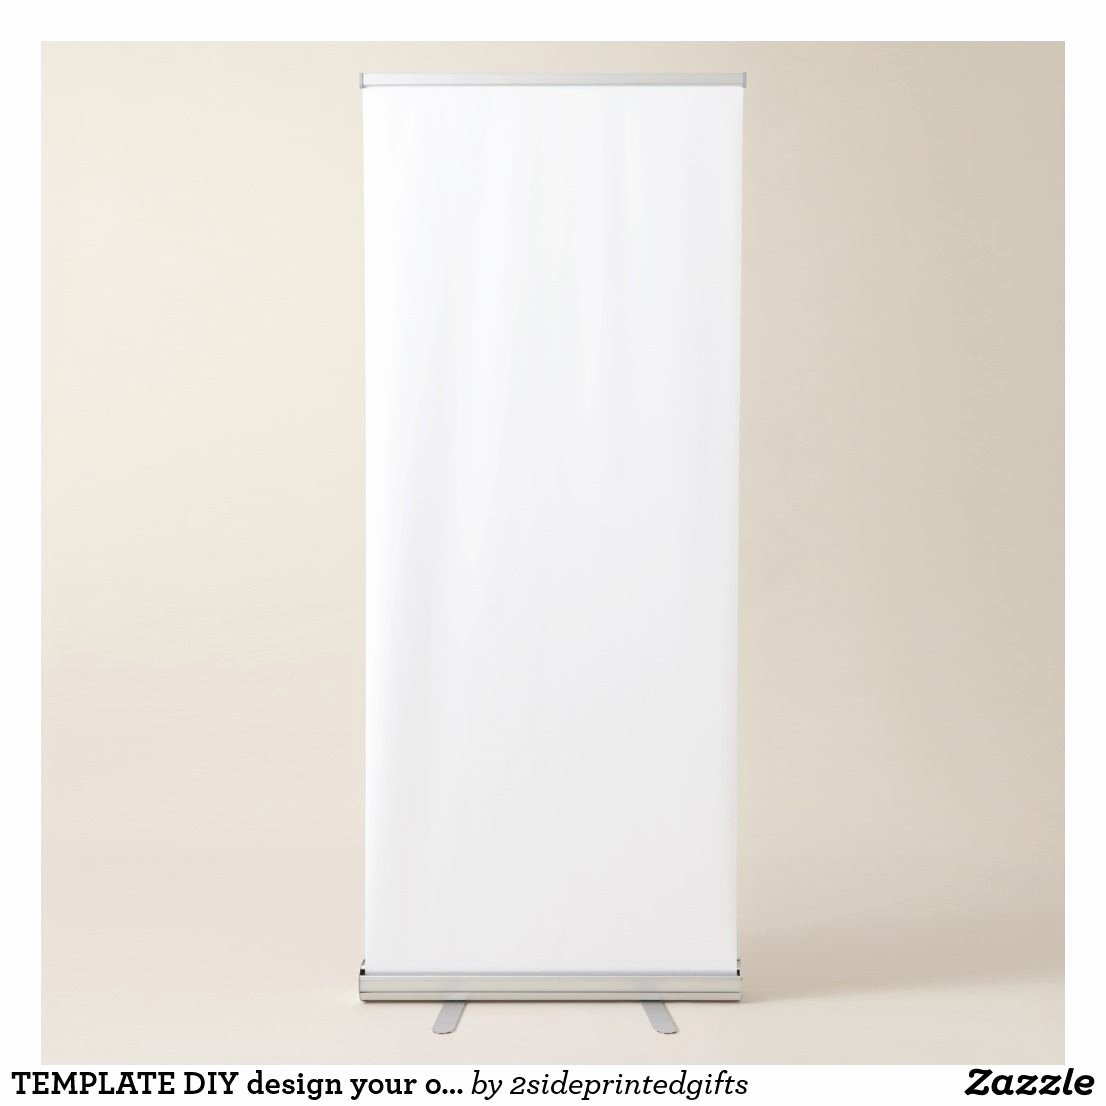 Retractable Banner Design Templates Unique Template Diy Design Your Own Add Photo Text Retractable Banner